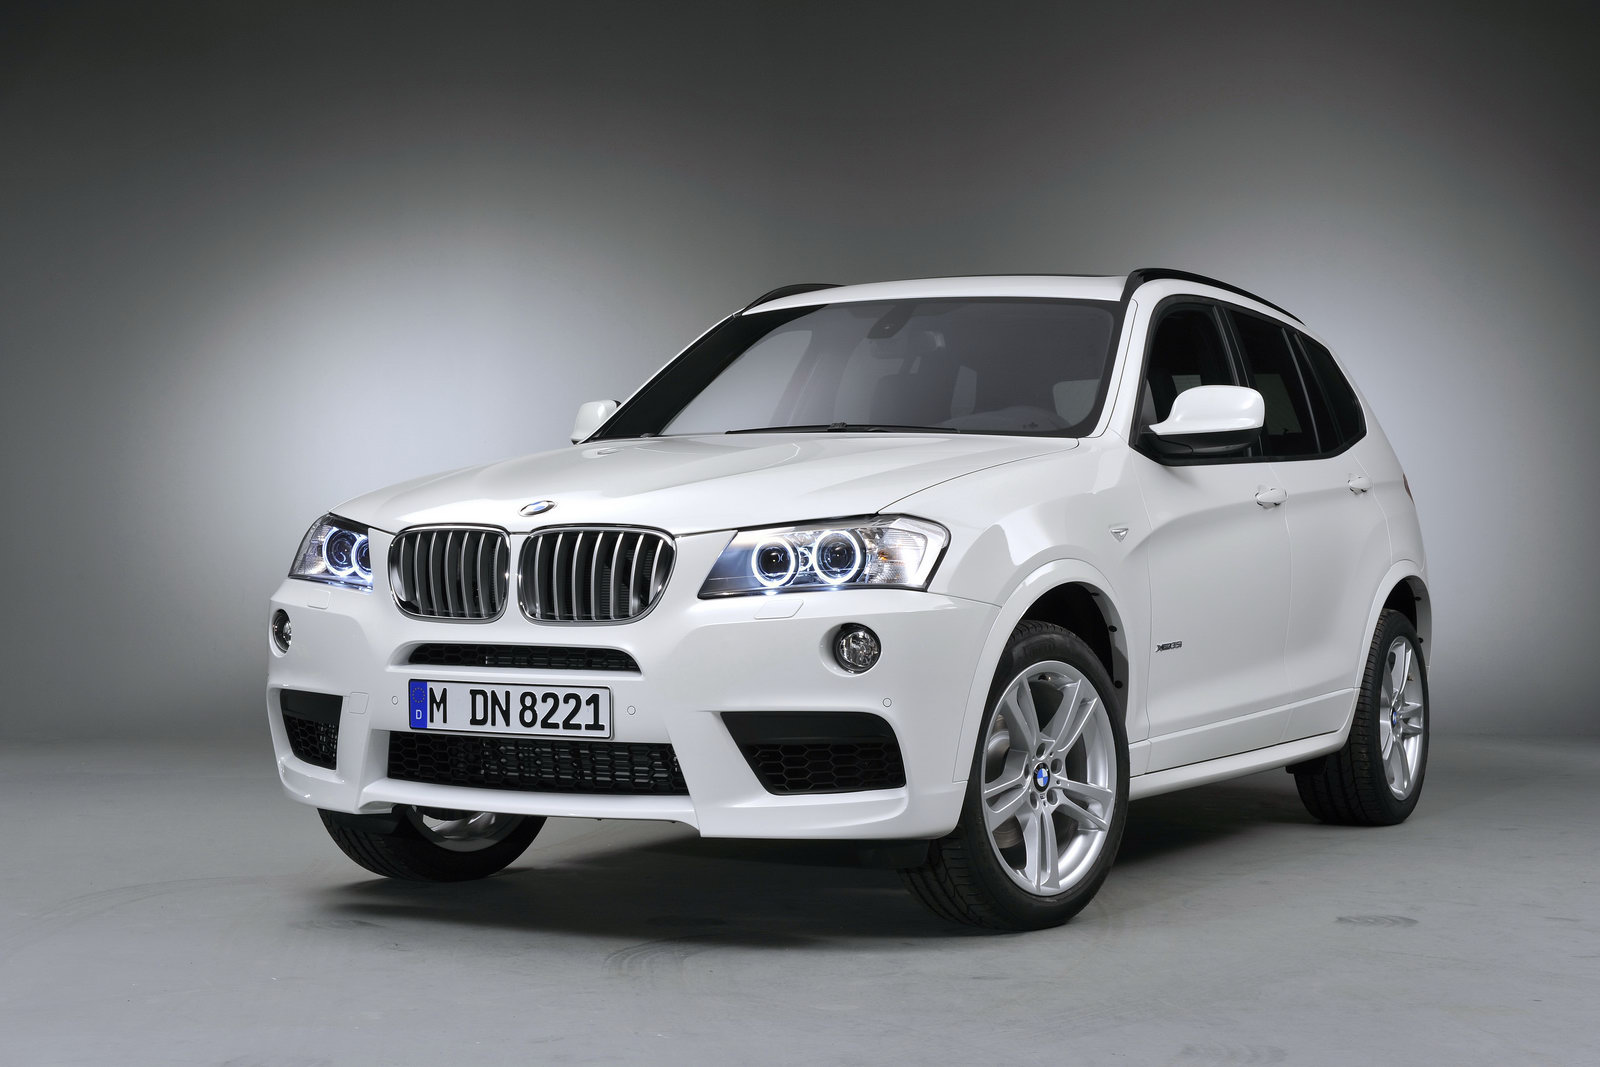 2011 Bmw X3 Gets Two New Engines And M Sport Package